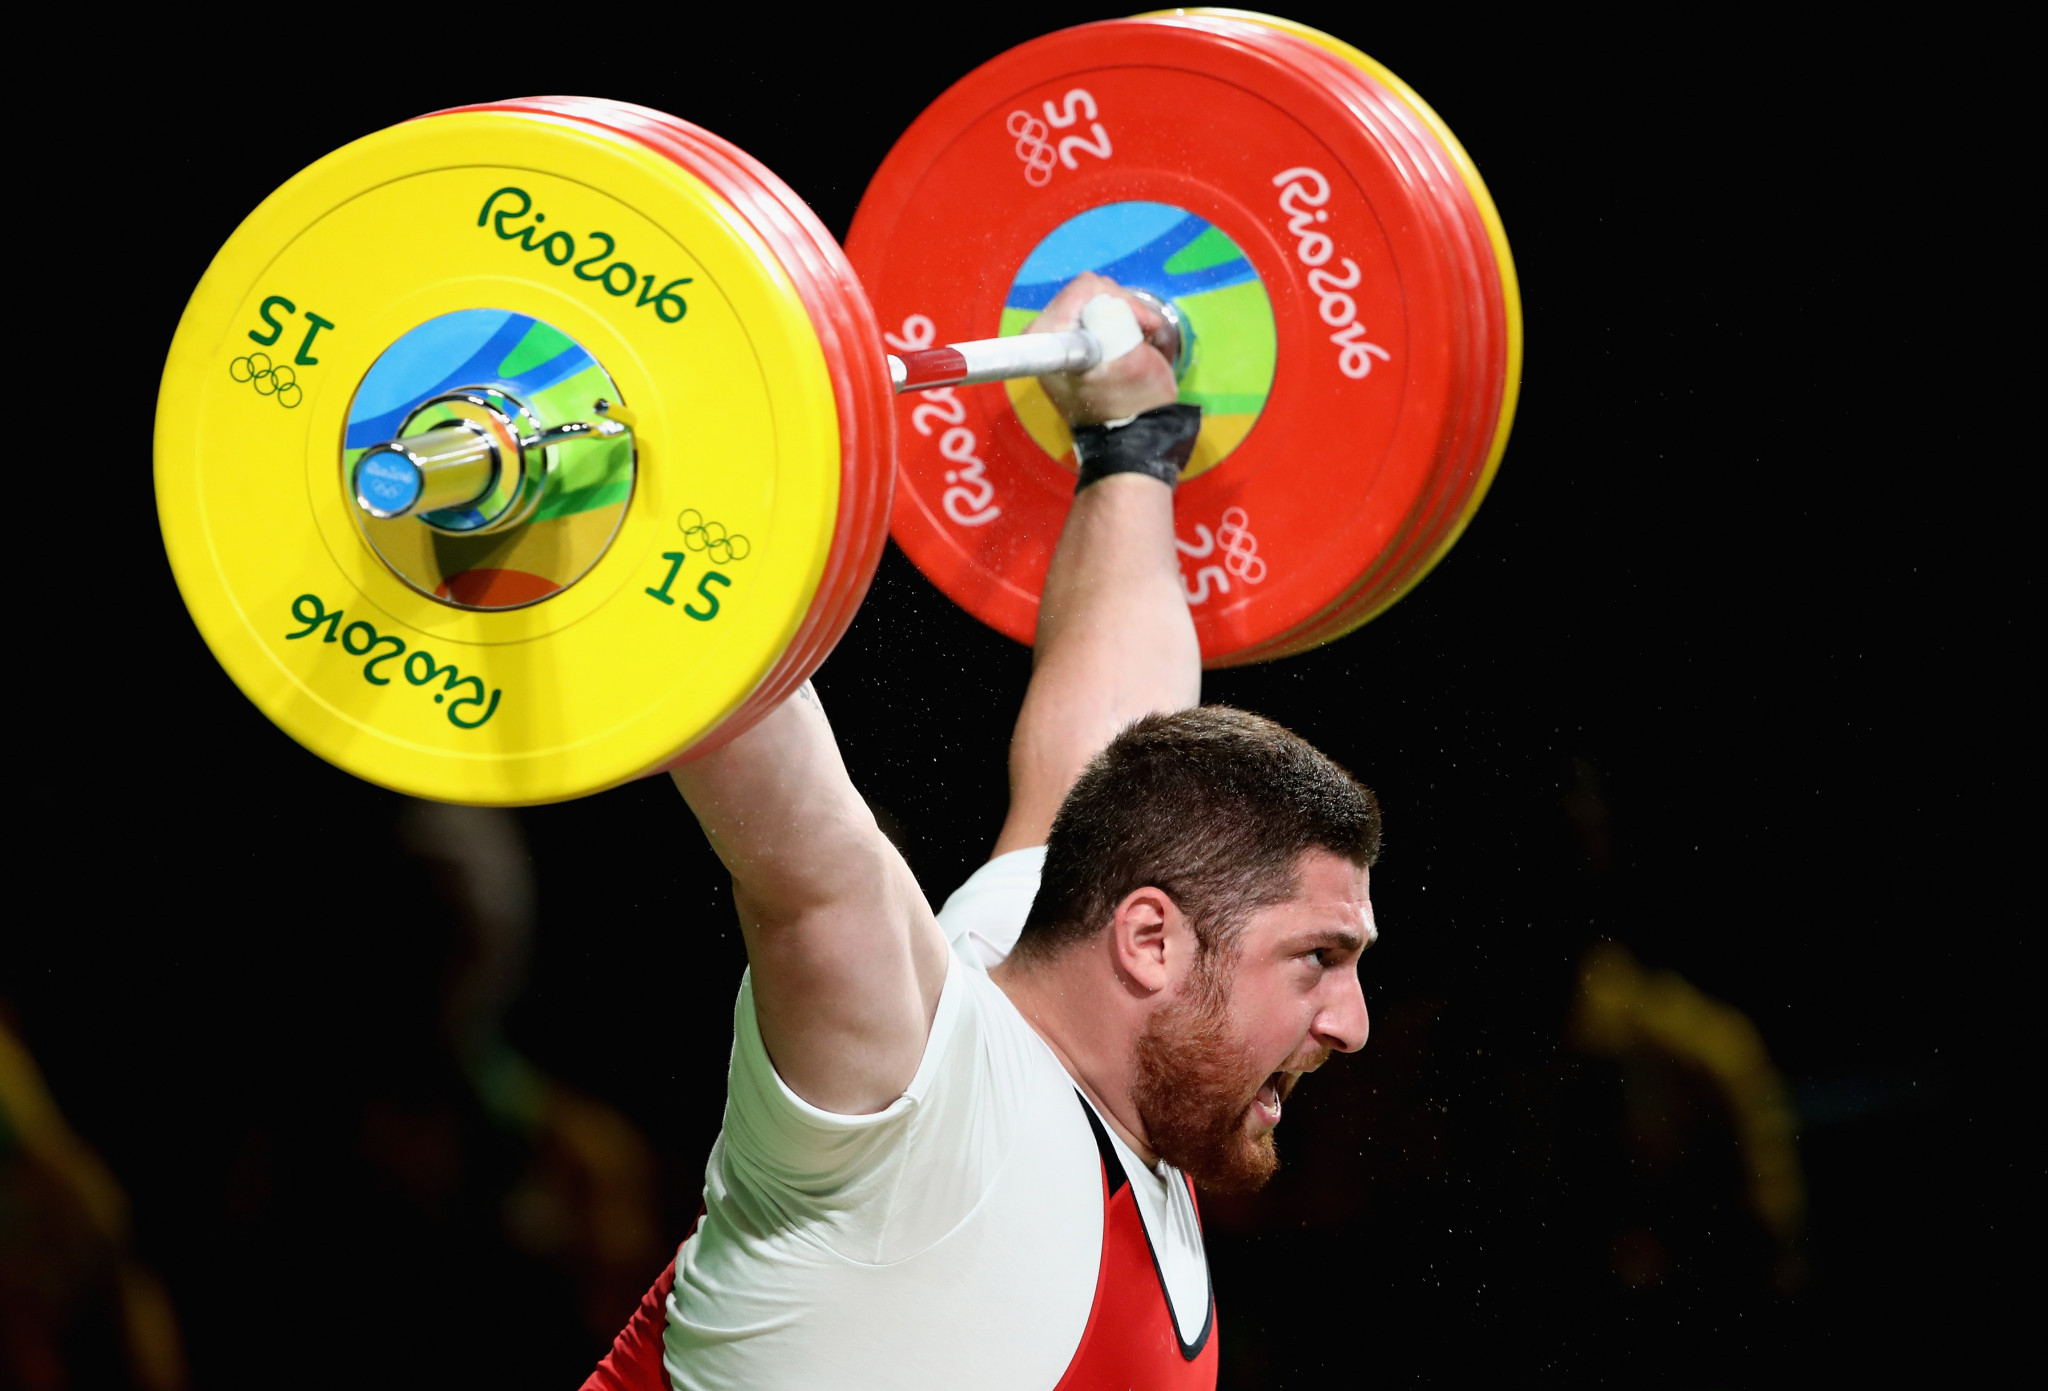 Georgia's Lasha Talakhadze was Kianoush Rostami's closest rival for the title of male Weightlifter of the Year ©Getty Images